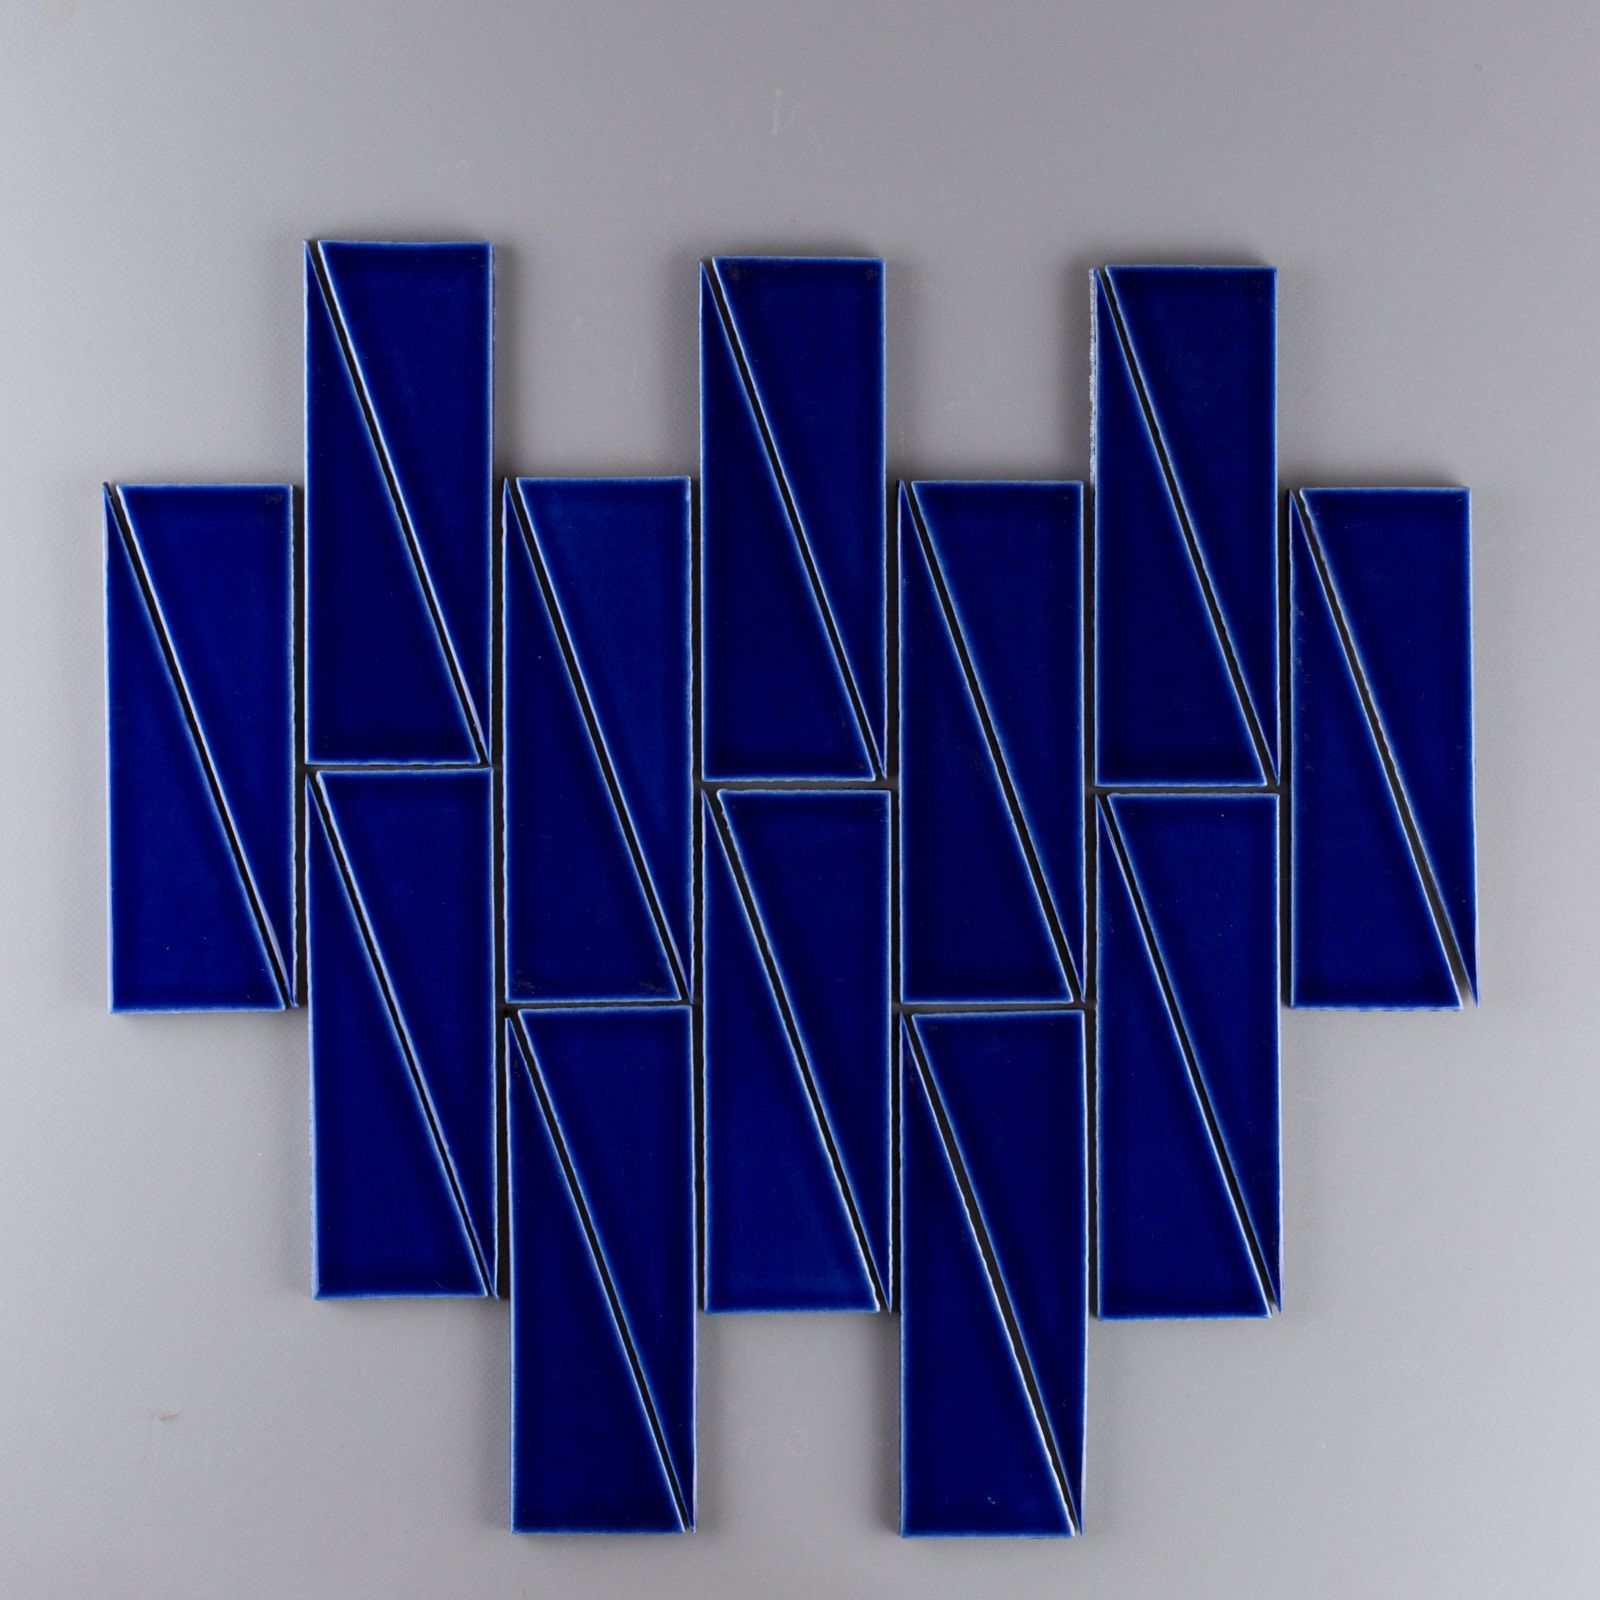 Scalene Triangles in Azul in a vertical offset pattern. | Triangle ...